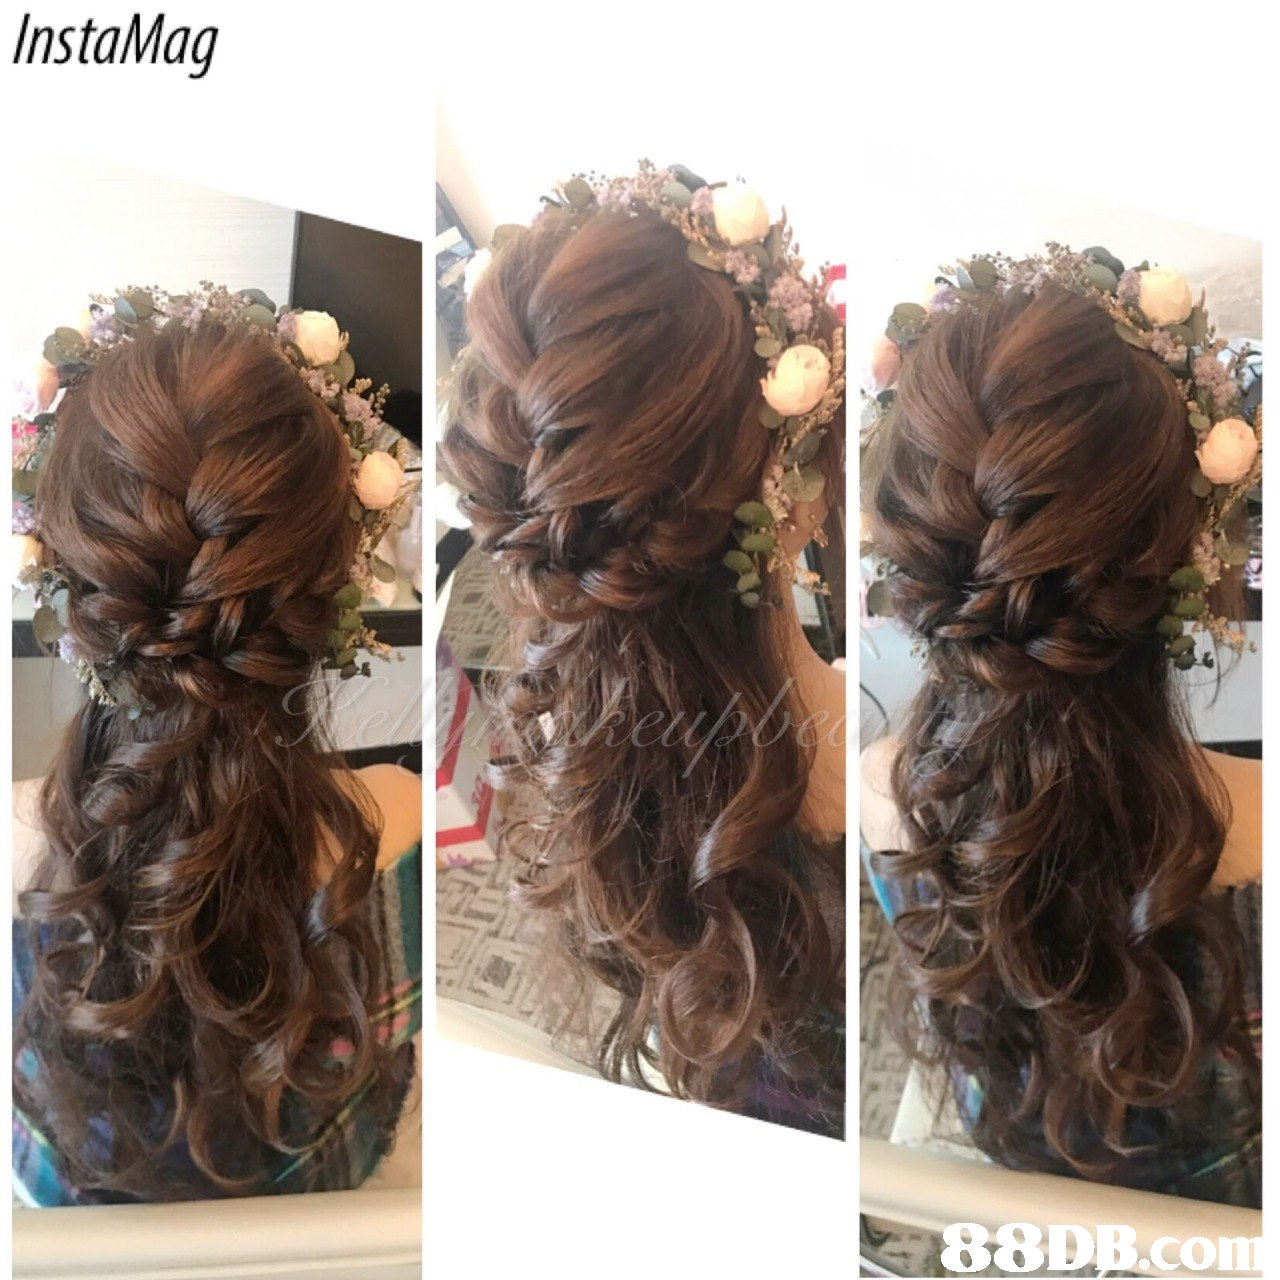 InstaMag 88DB.com  hair